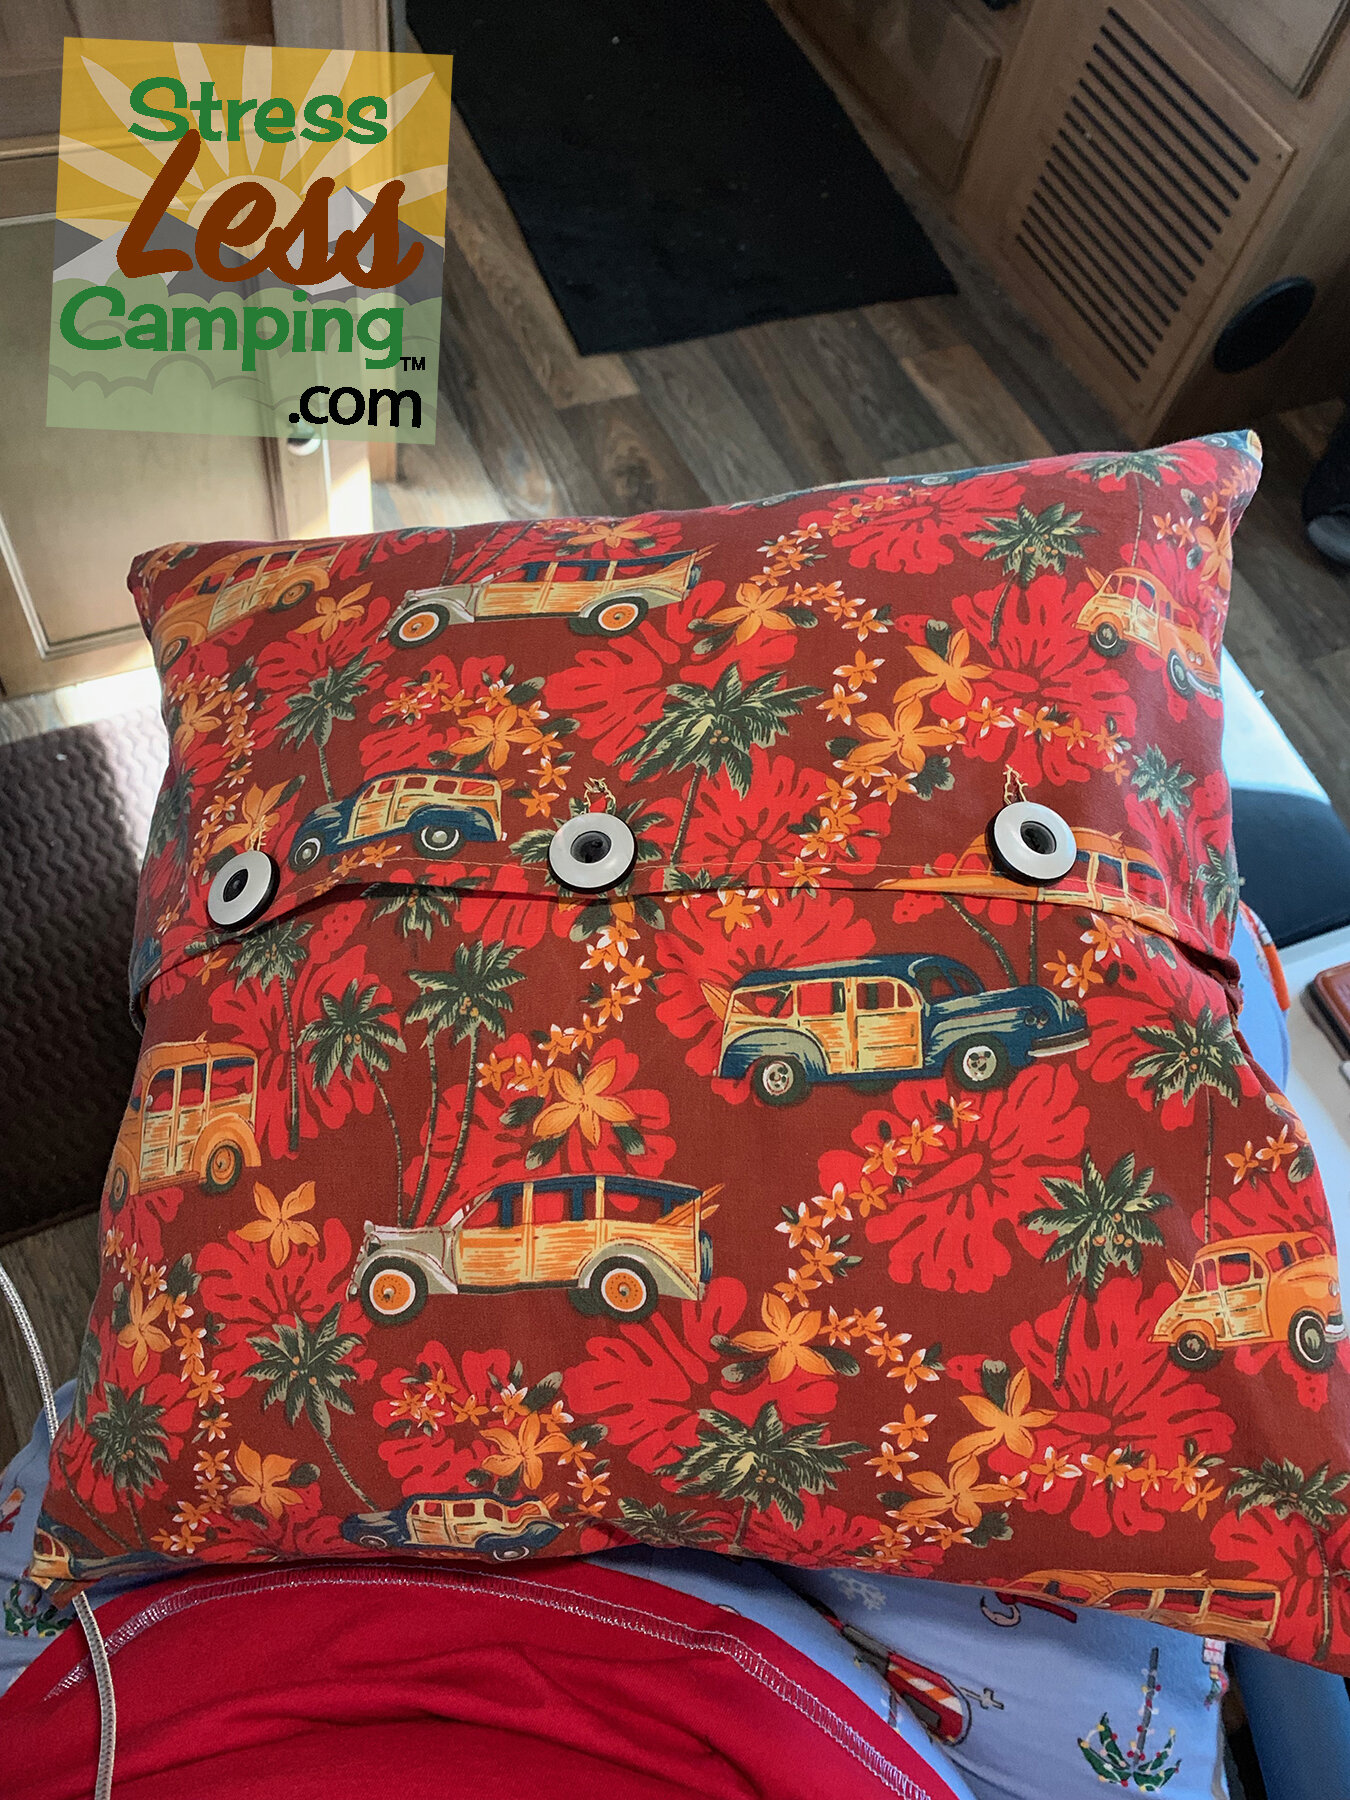 I simply recovered the pillows with woody-themed fabric and even used hubcap-themed buttons!